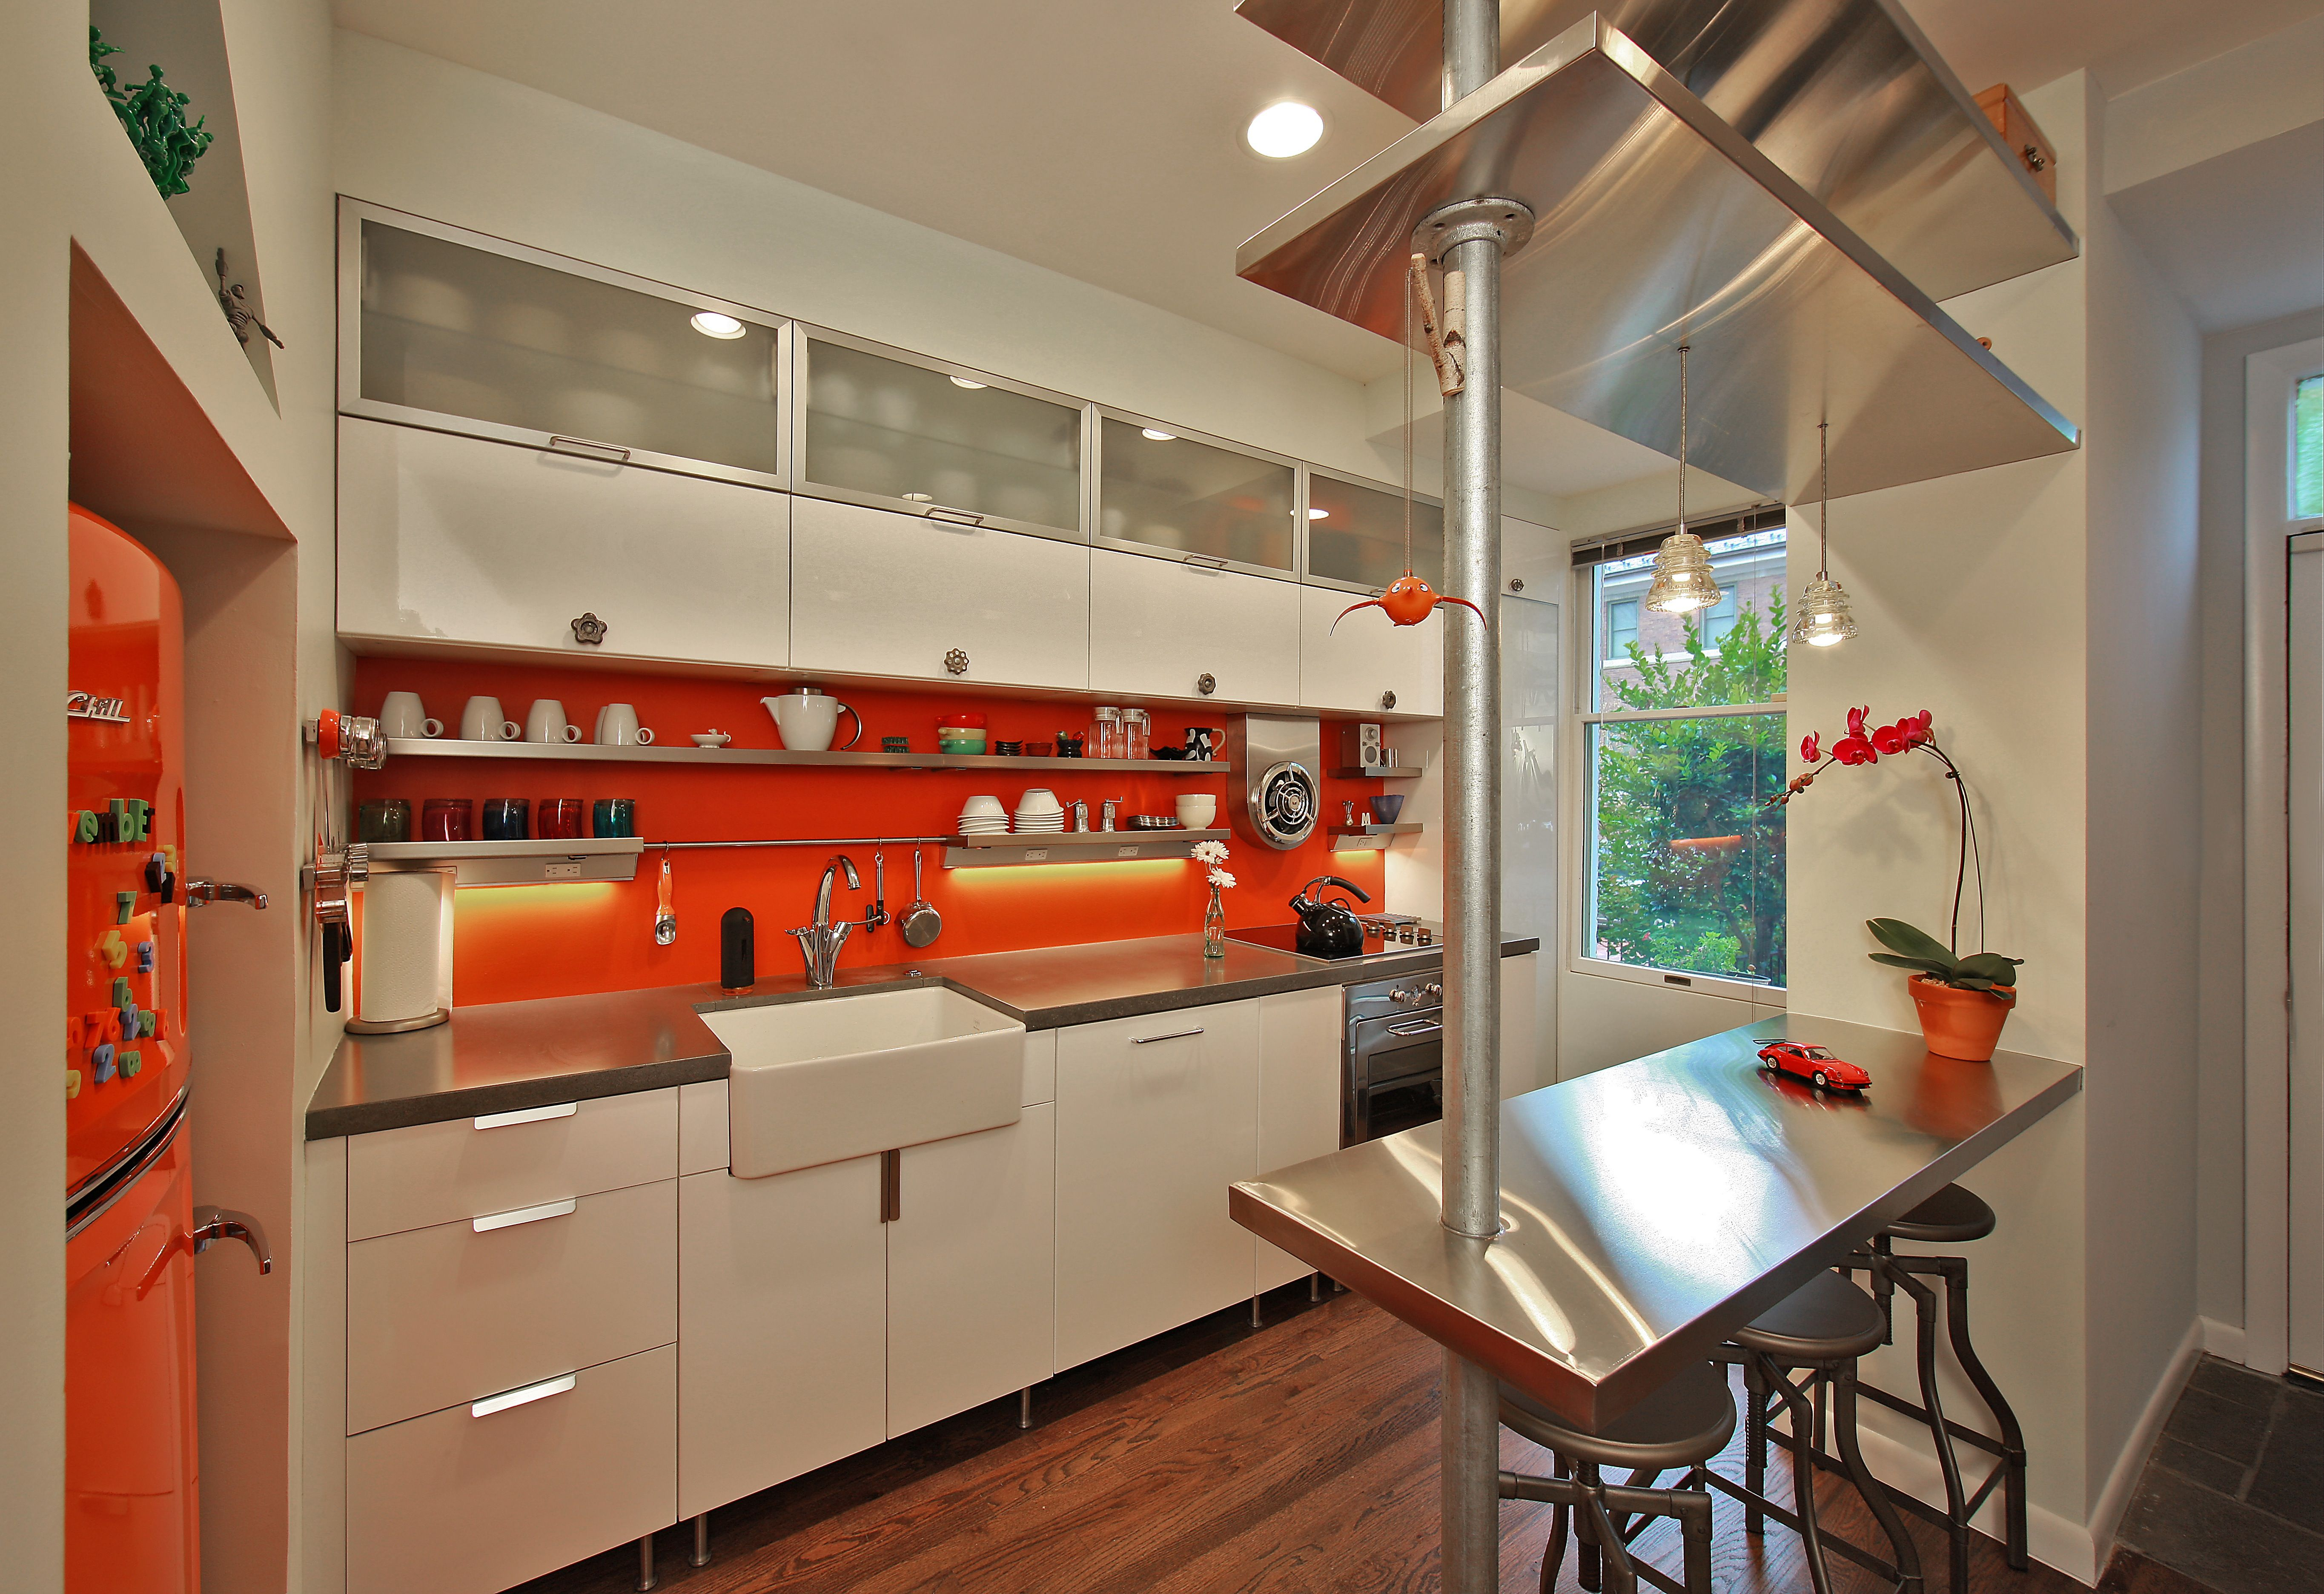 Sweet orange and white kitchen remodel with stainless steel accents ...